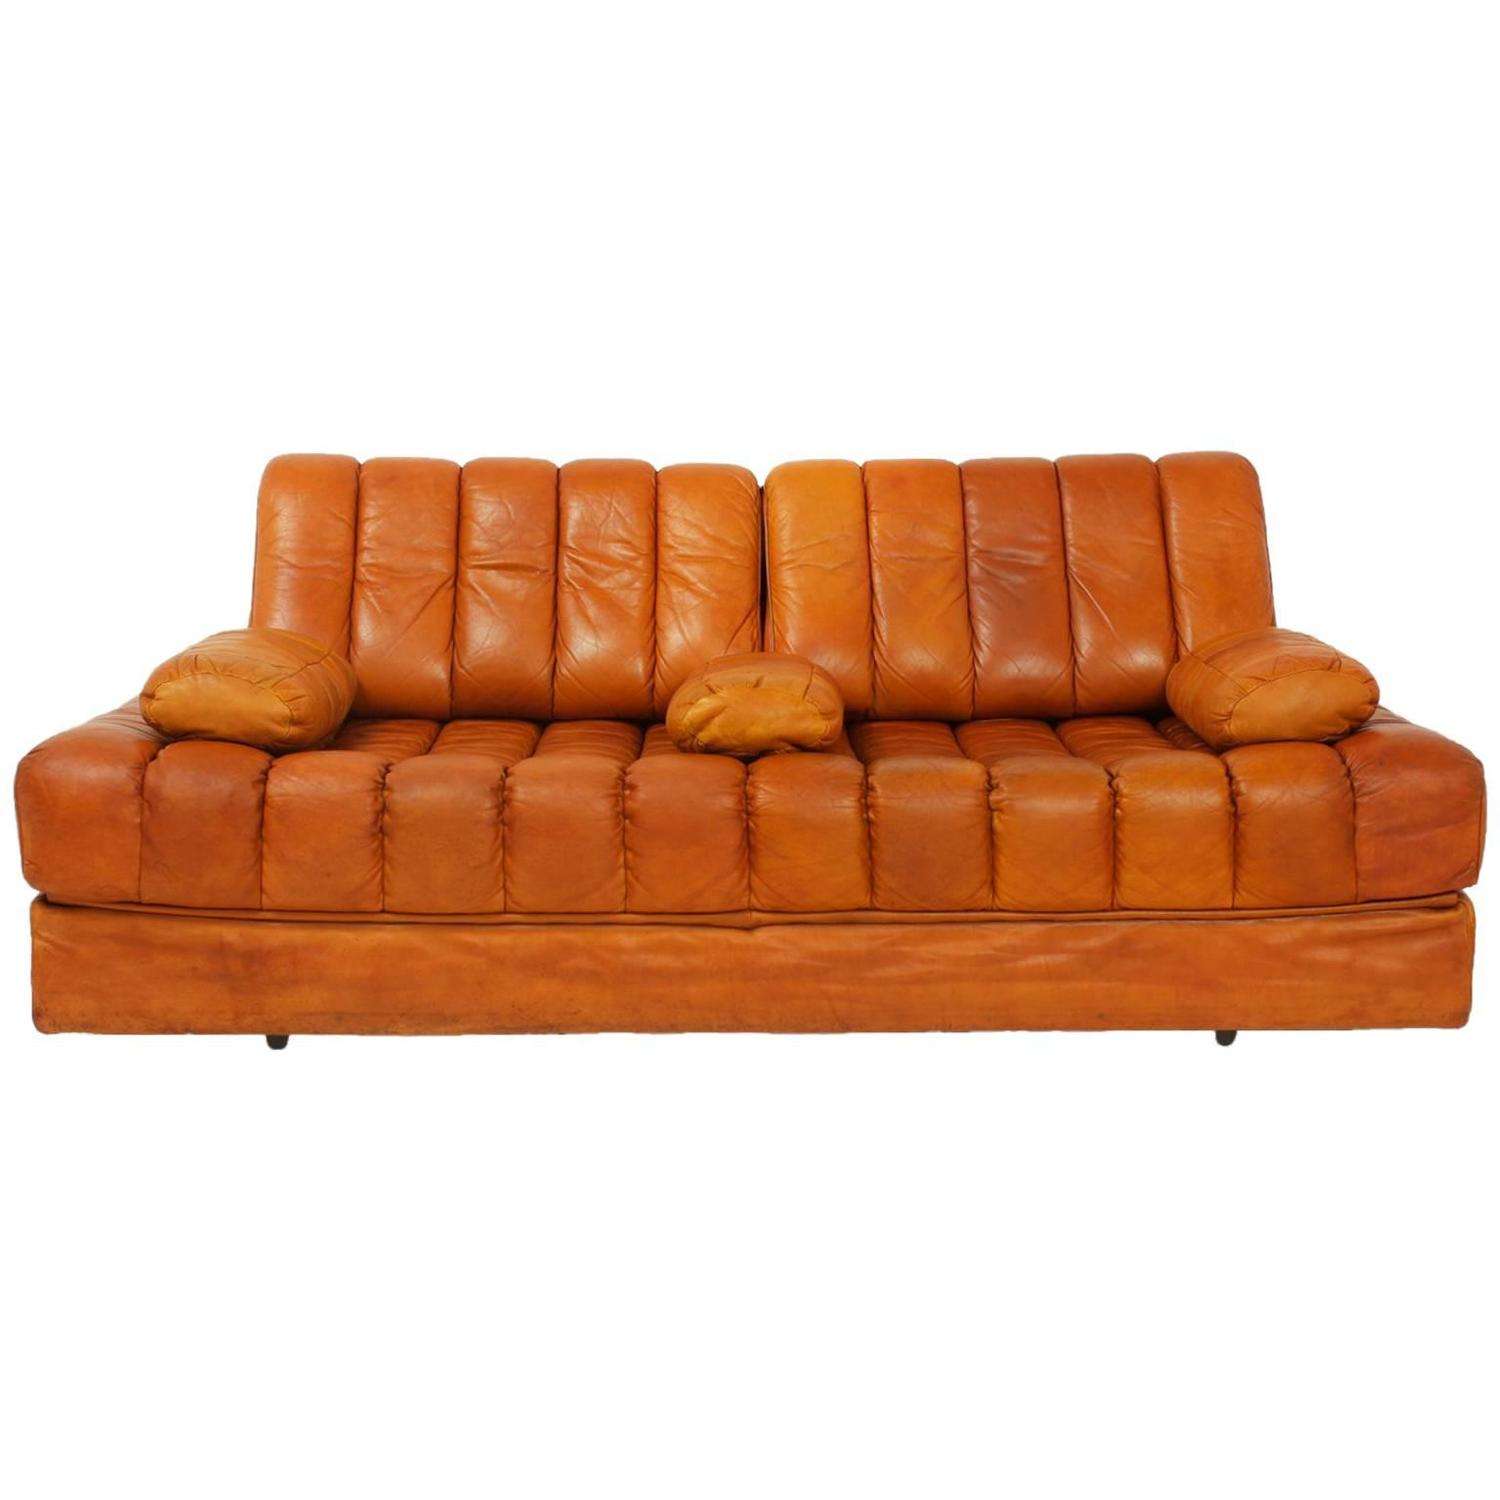 Convertible Sofa Bed by de Sede For Sale at 1stdibs